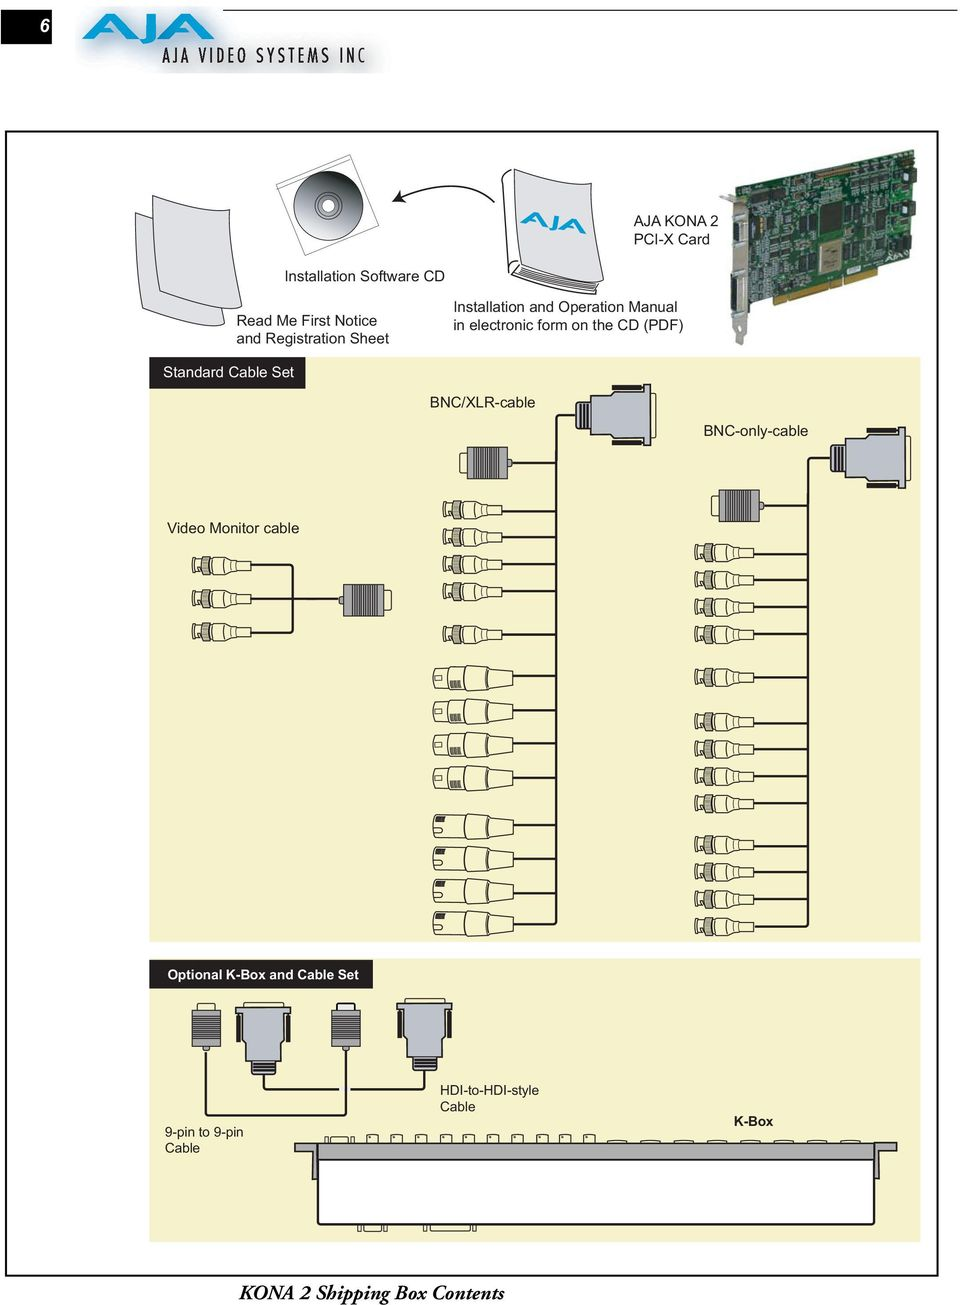 (PDF) Standard Cable Set BNC/XLR-cable BNC-only-cable Video Monitor cable Optional